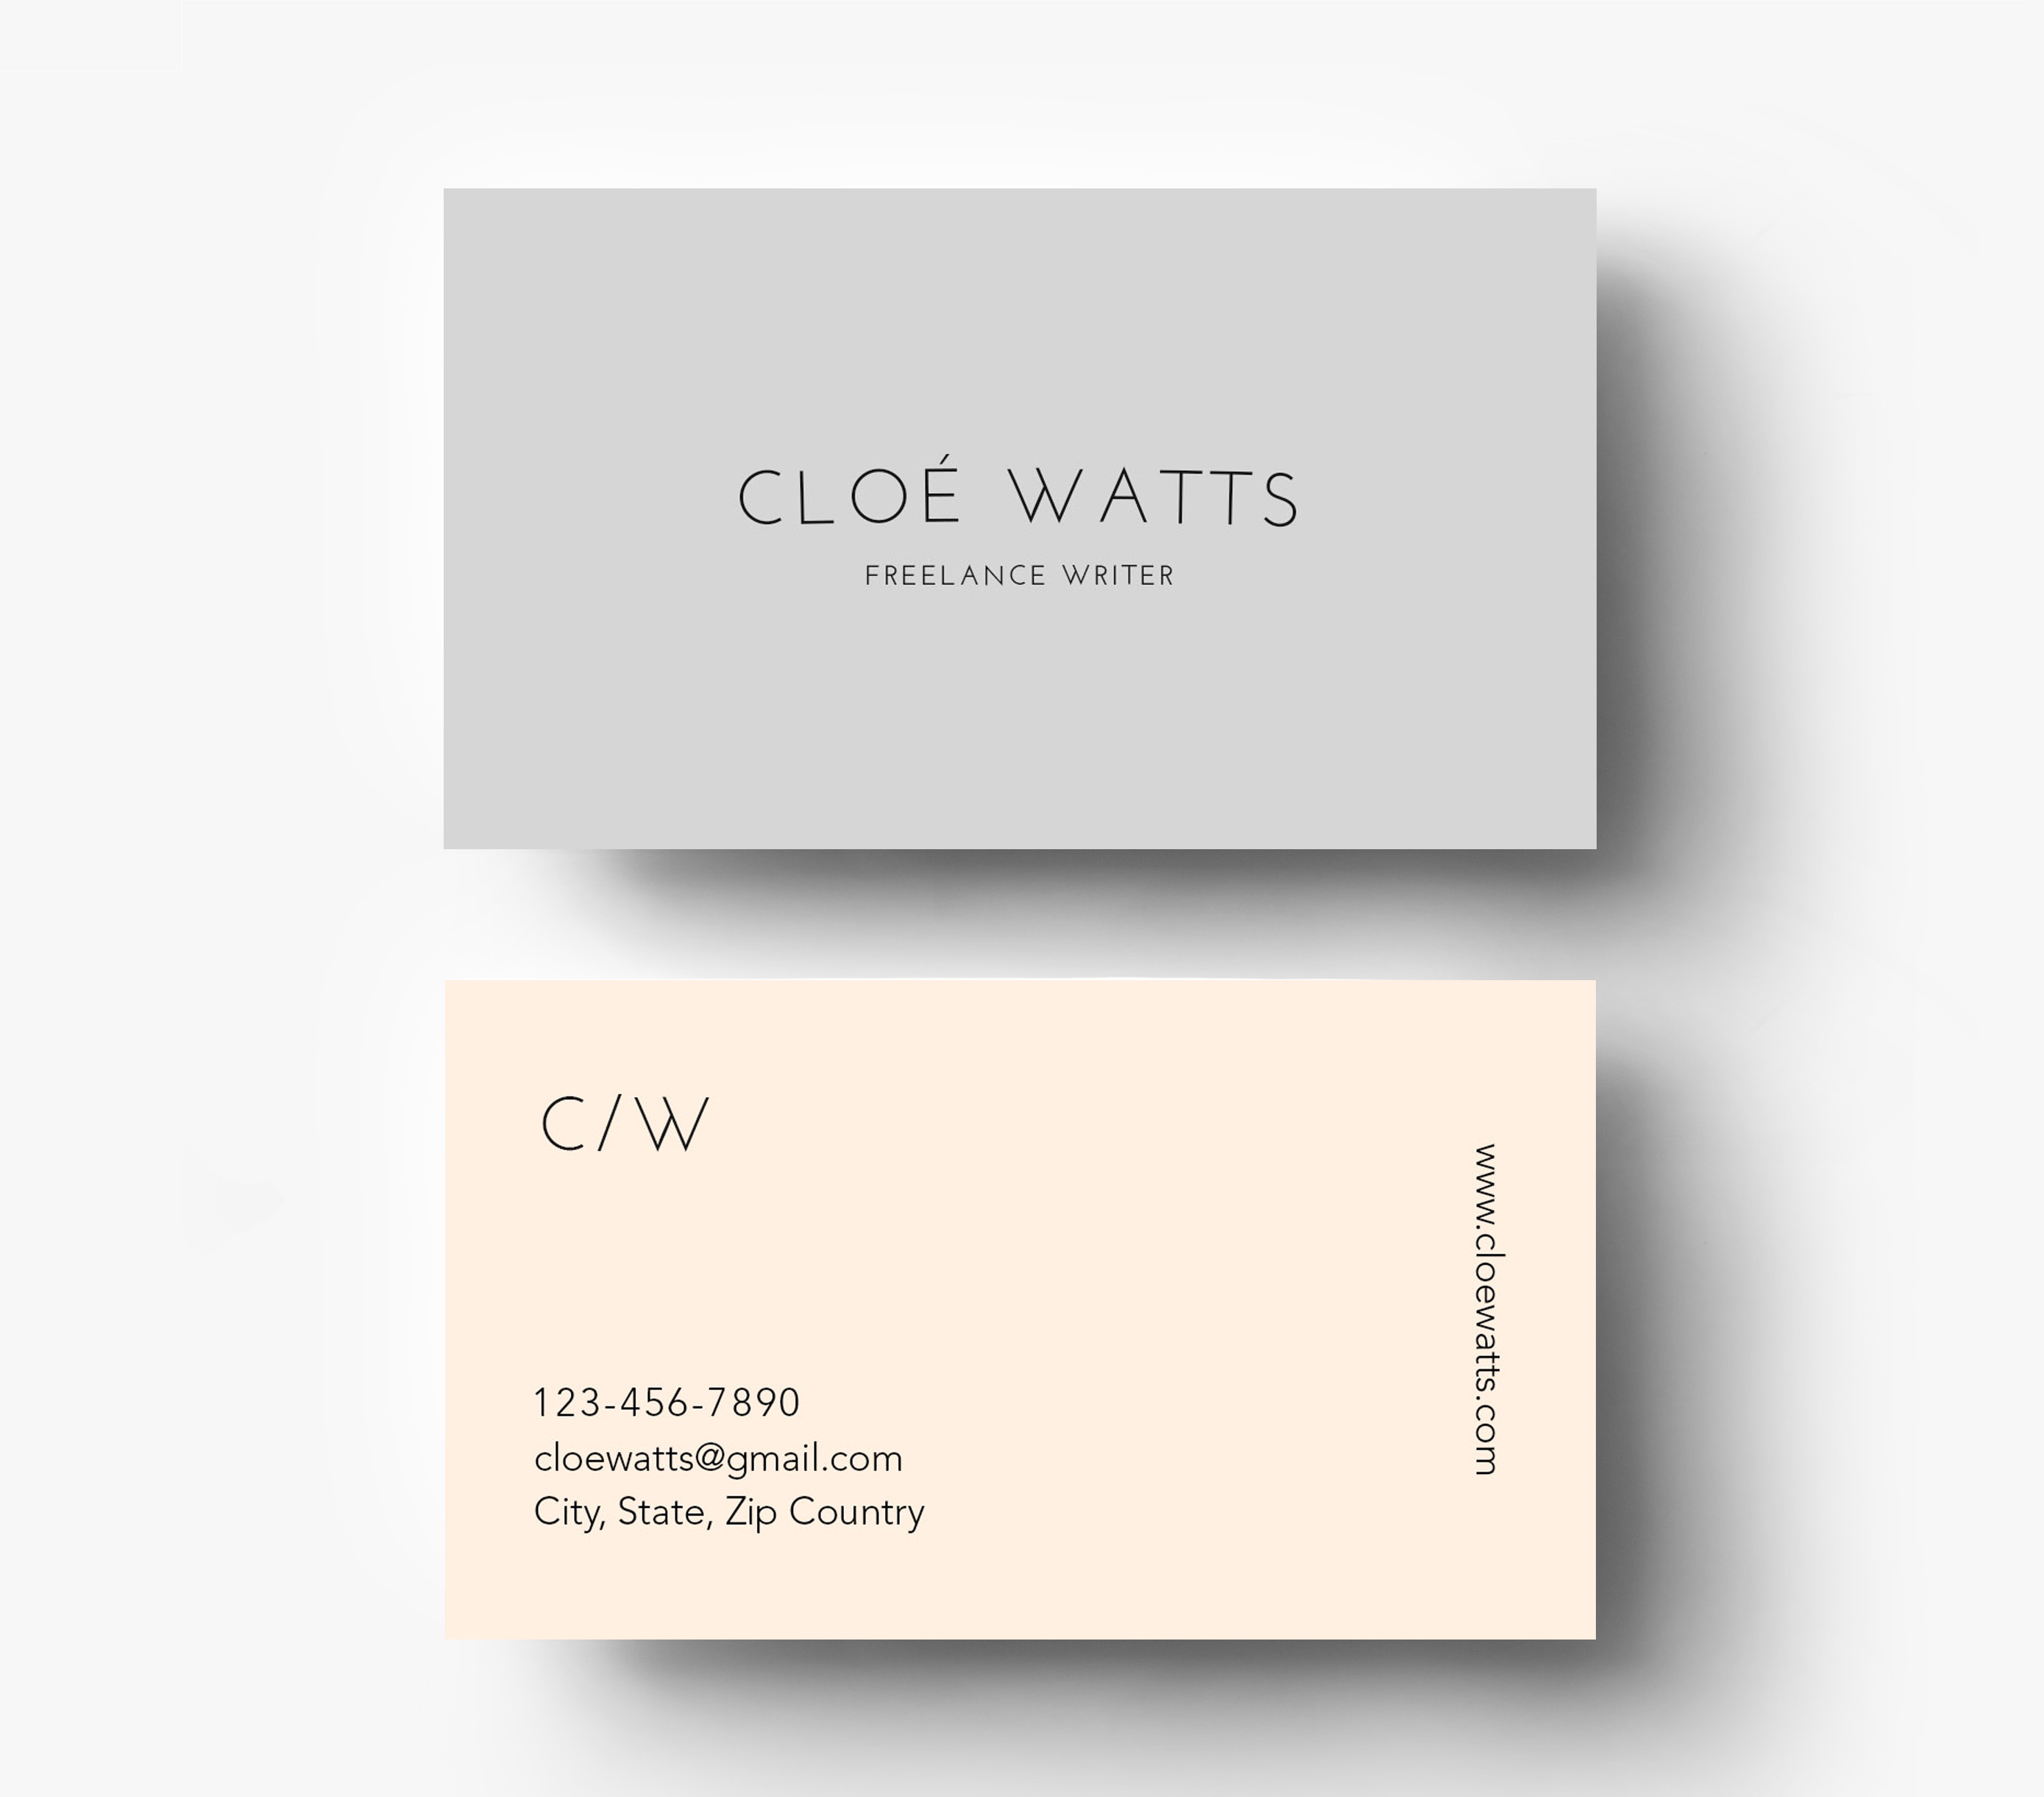 awesome gallery of simple business cards business cards